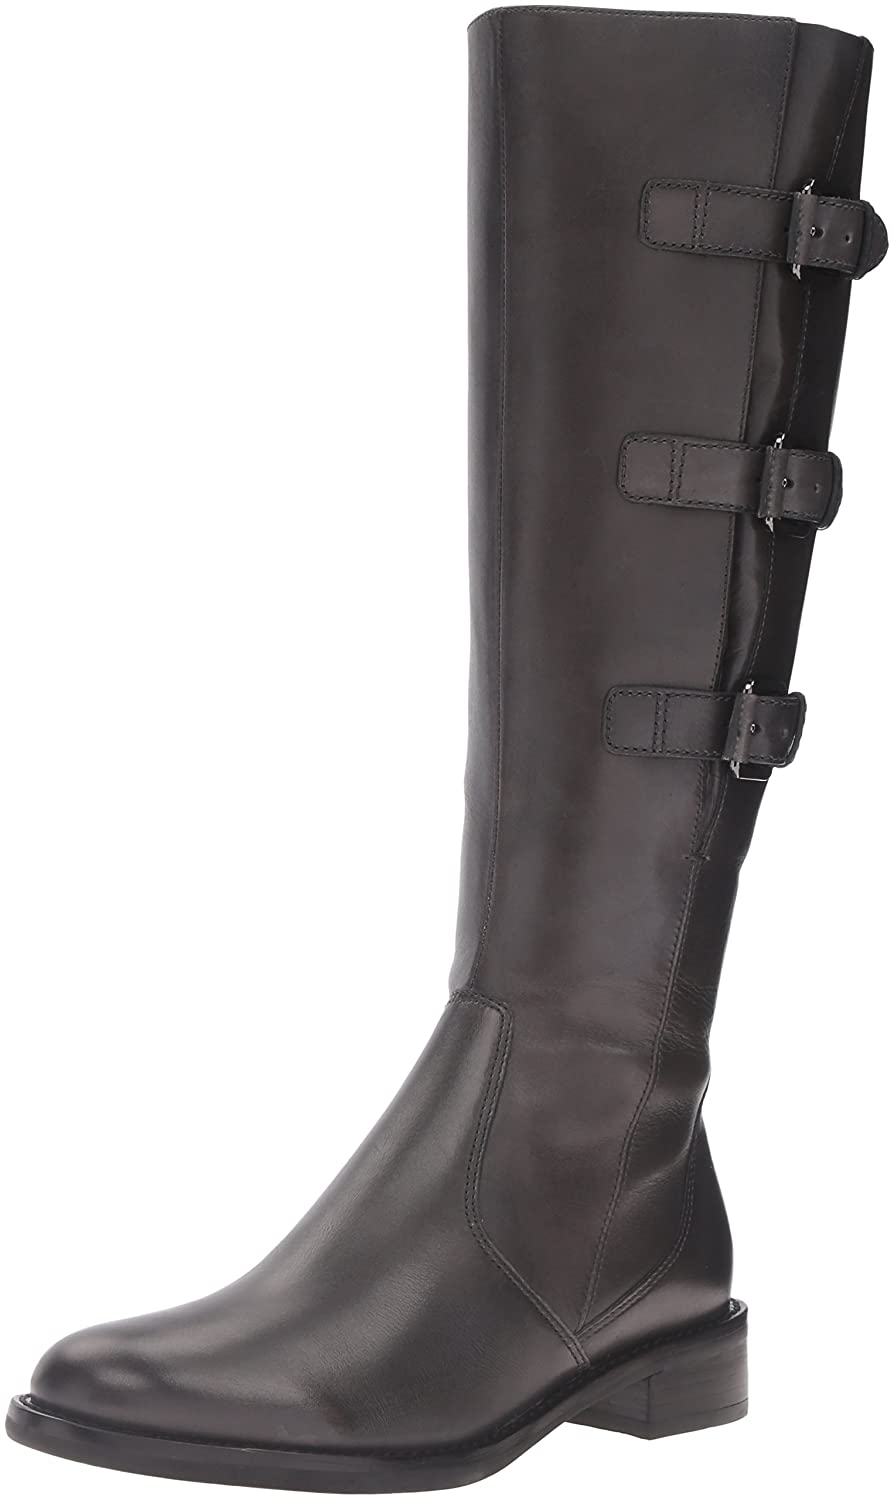 ECCO Women's Hobart Riding Boot B01A9JGOMY 35 EU/4-4.5 M US|Wild Dove